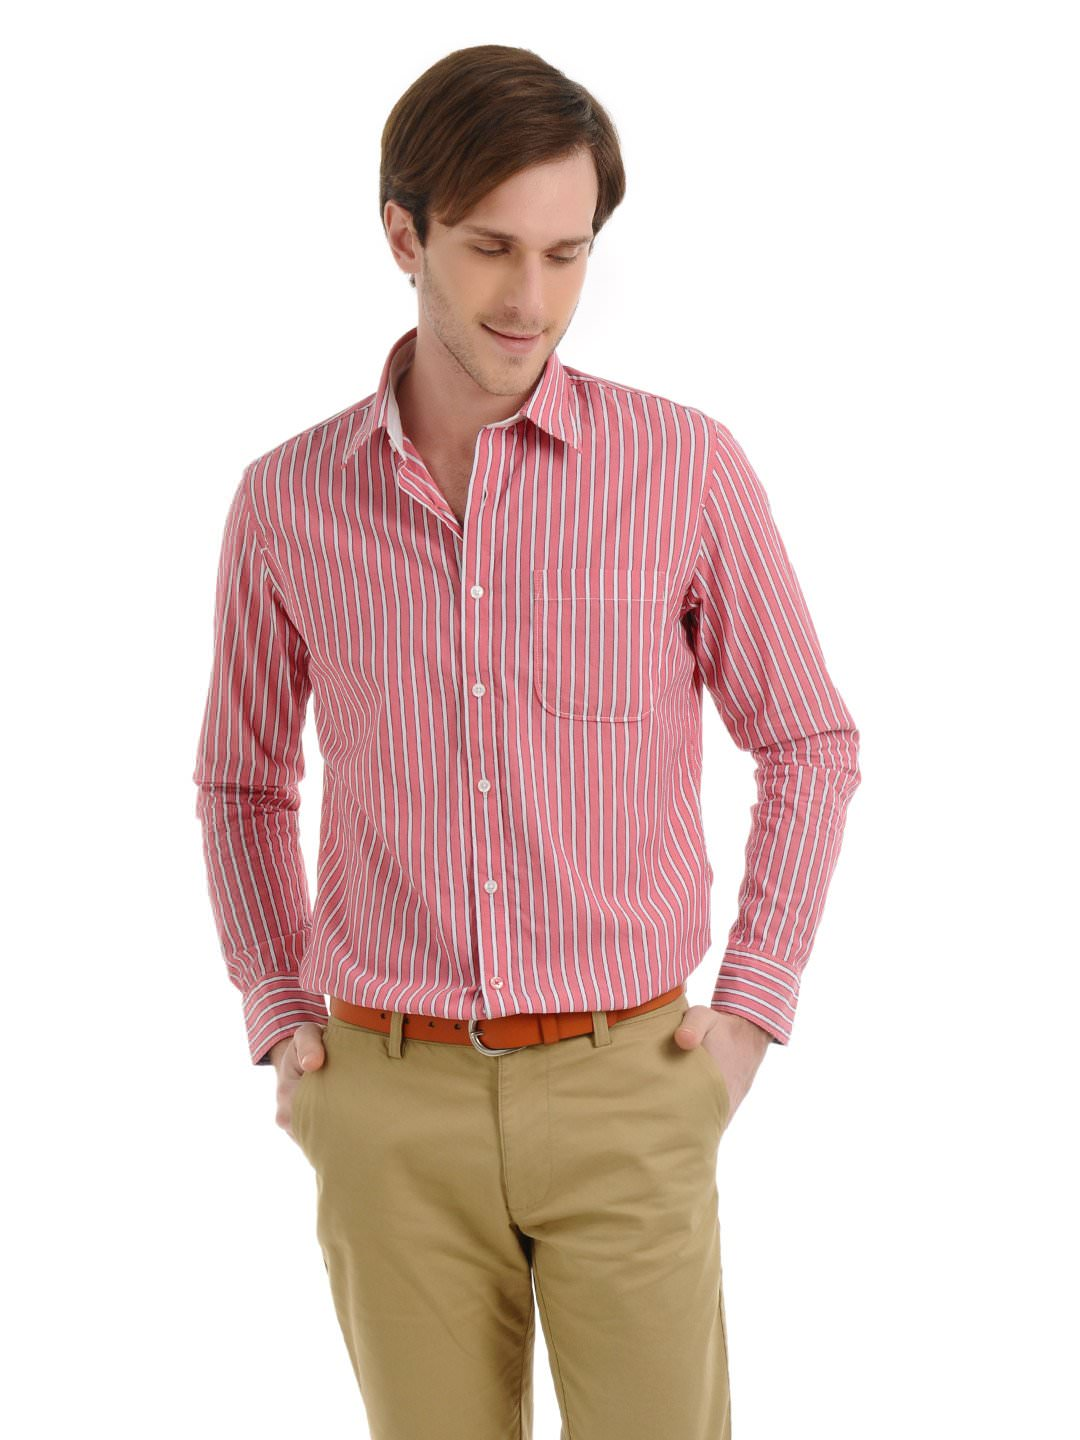 Find great deals on Striped Pink Polo Shirts, Bright Pink Polo Shirts and Light Pink Polo Shirts at Macy's. Macy's Presents: The Edit - A curated mix of fashion and inspiration Check It Out Free Shipping with $99 purchase + Free Store Pickup.